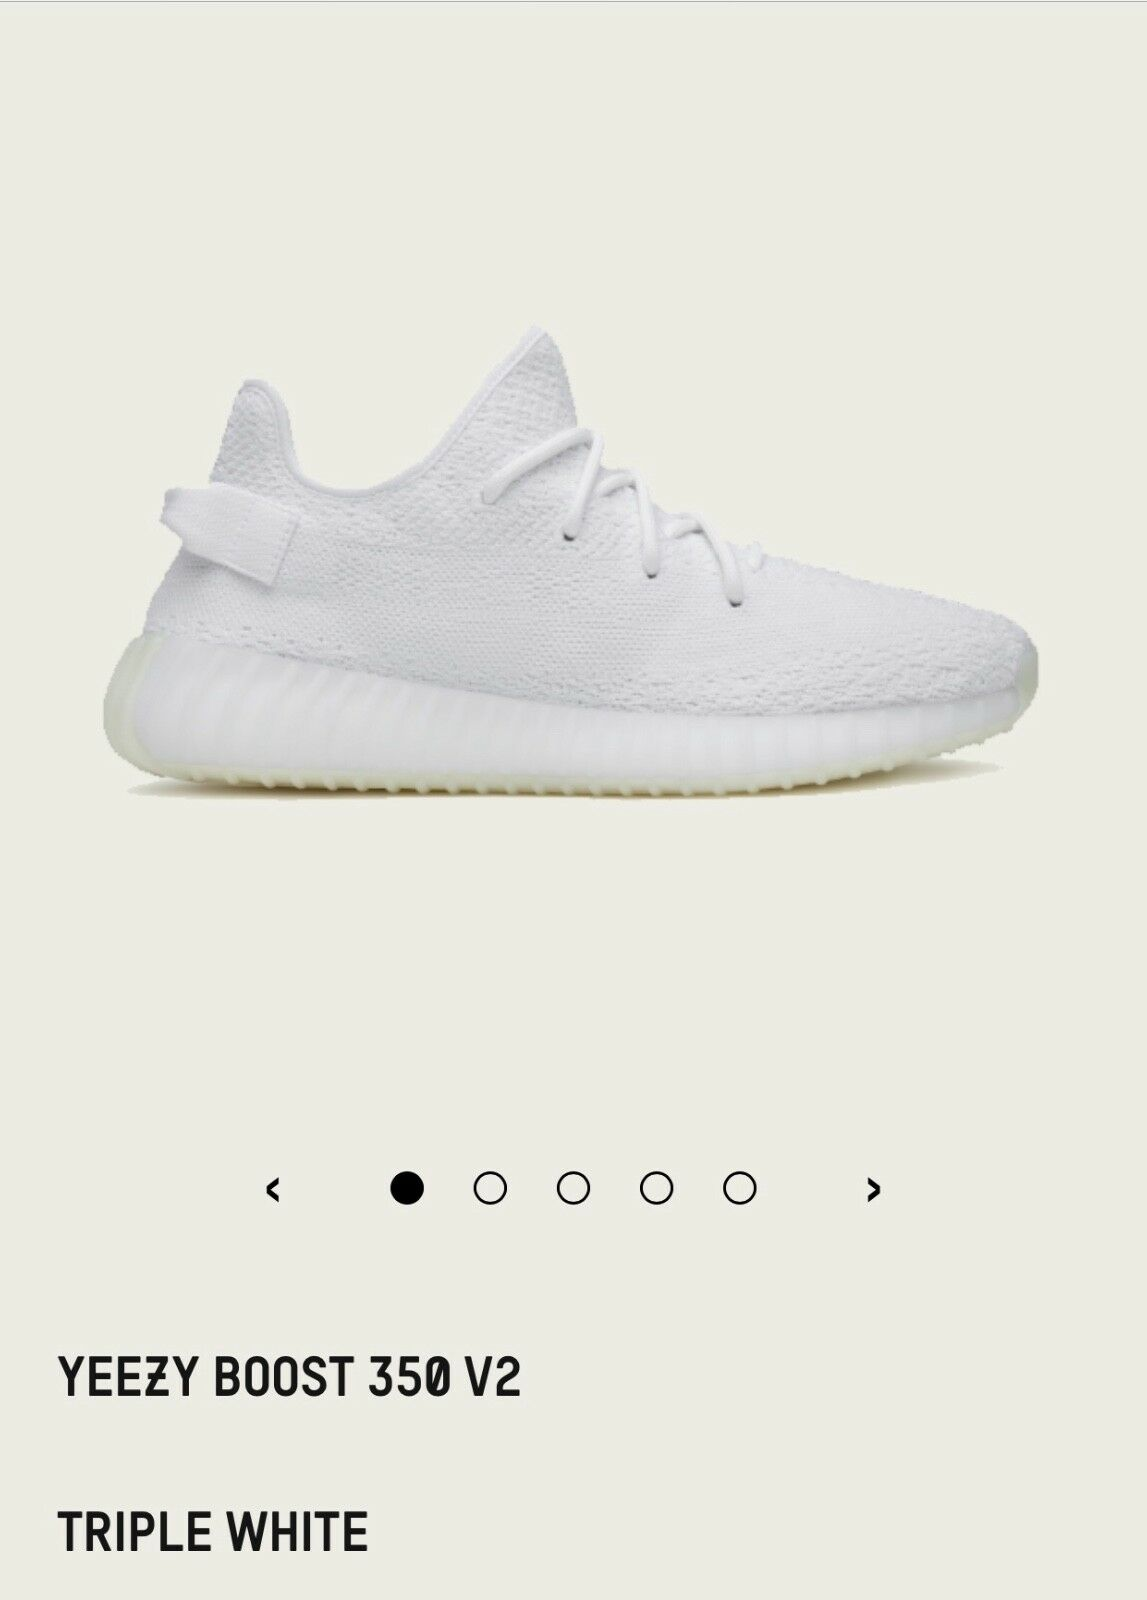 Adidas Yeezy Boost 350 V2 Size  us 8.5 - Triple White. 100% authentic.